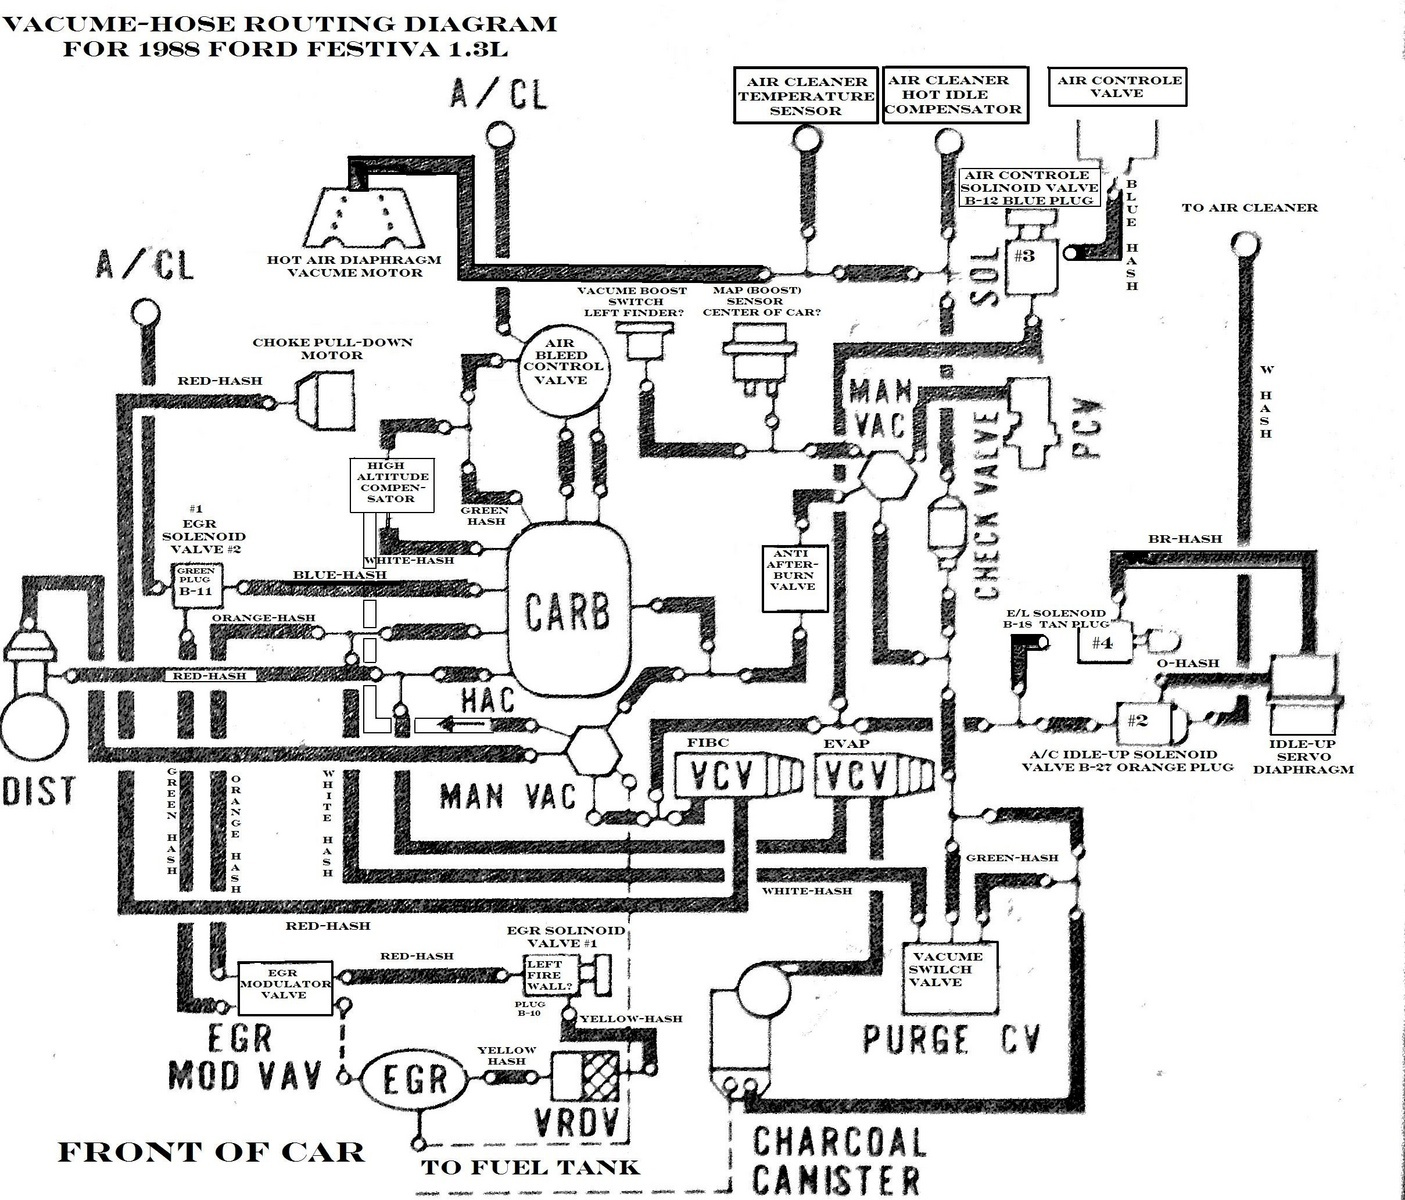 1990 Ford L9000 Fuel Systems Diagram - top electrical wiring ... Ke Box Wiring Diagram on box dimensions diagram, box frame diagram, box wiring globe, box engine diagram, box parts diagram, box brochure, box fan diagram, box heater, box motor,